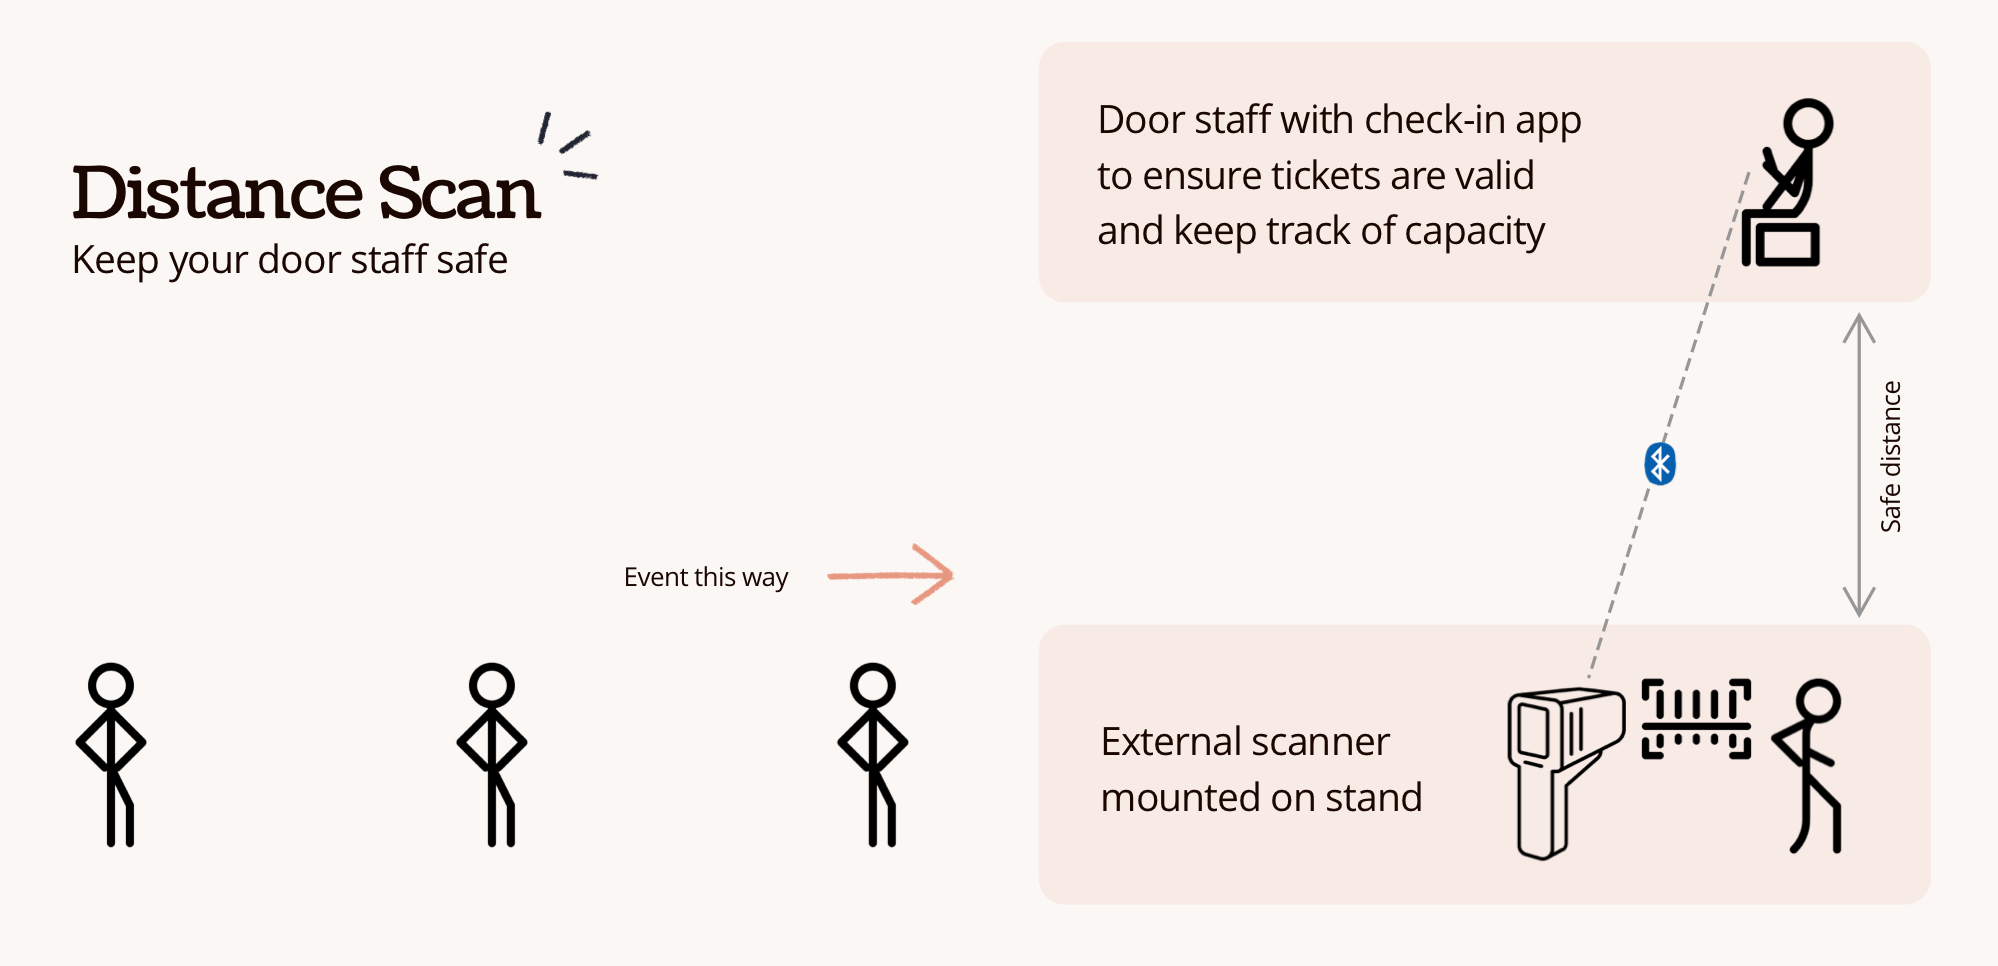 How to manage entry to an event during lockdown easements